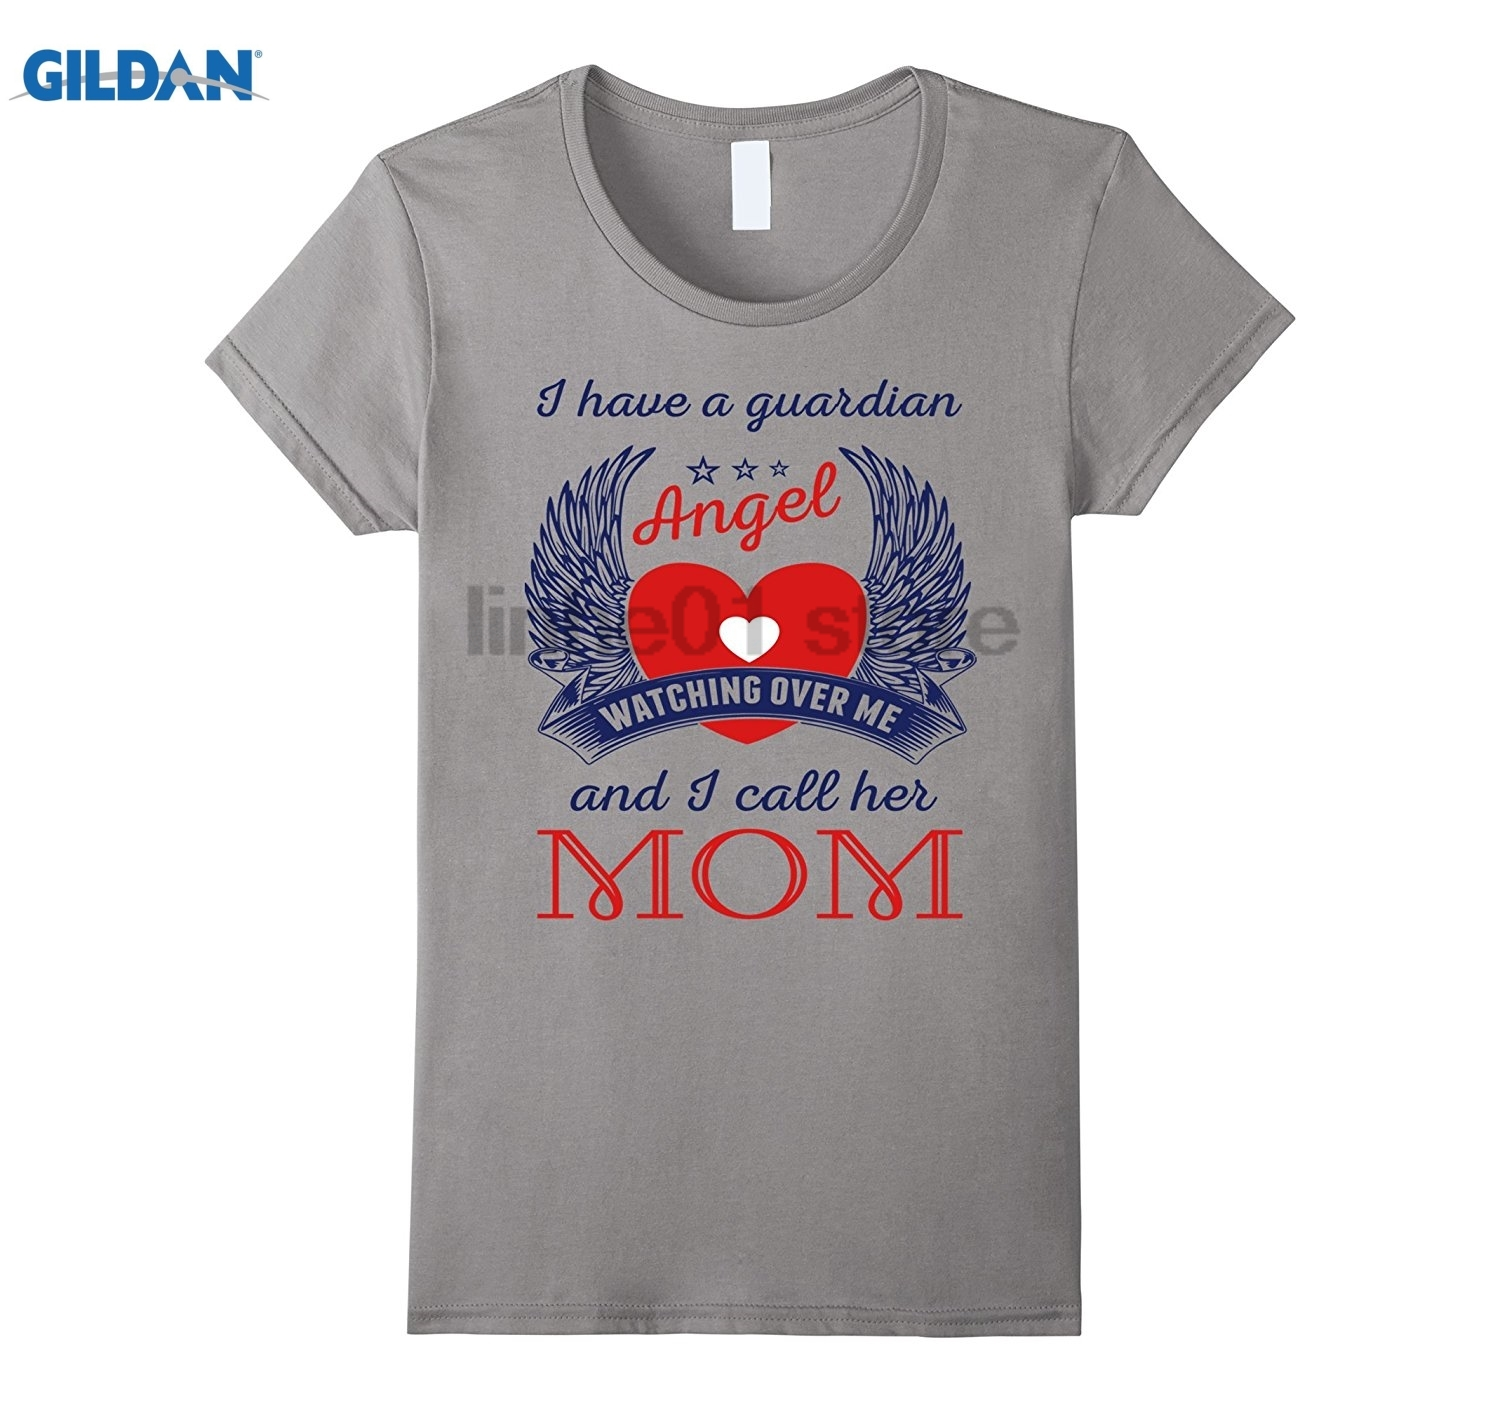 GILDAN I Have a Guardian Angel Watching Over Me and I Call Her Mom Womens T-shirt Womens T-shirt